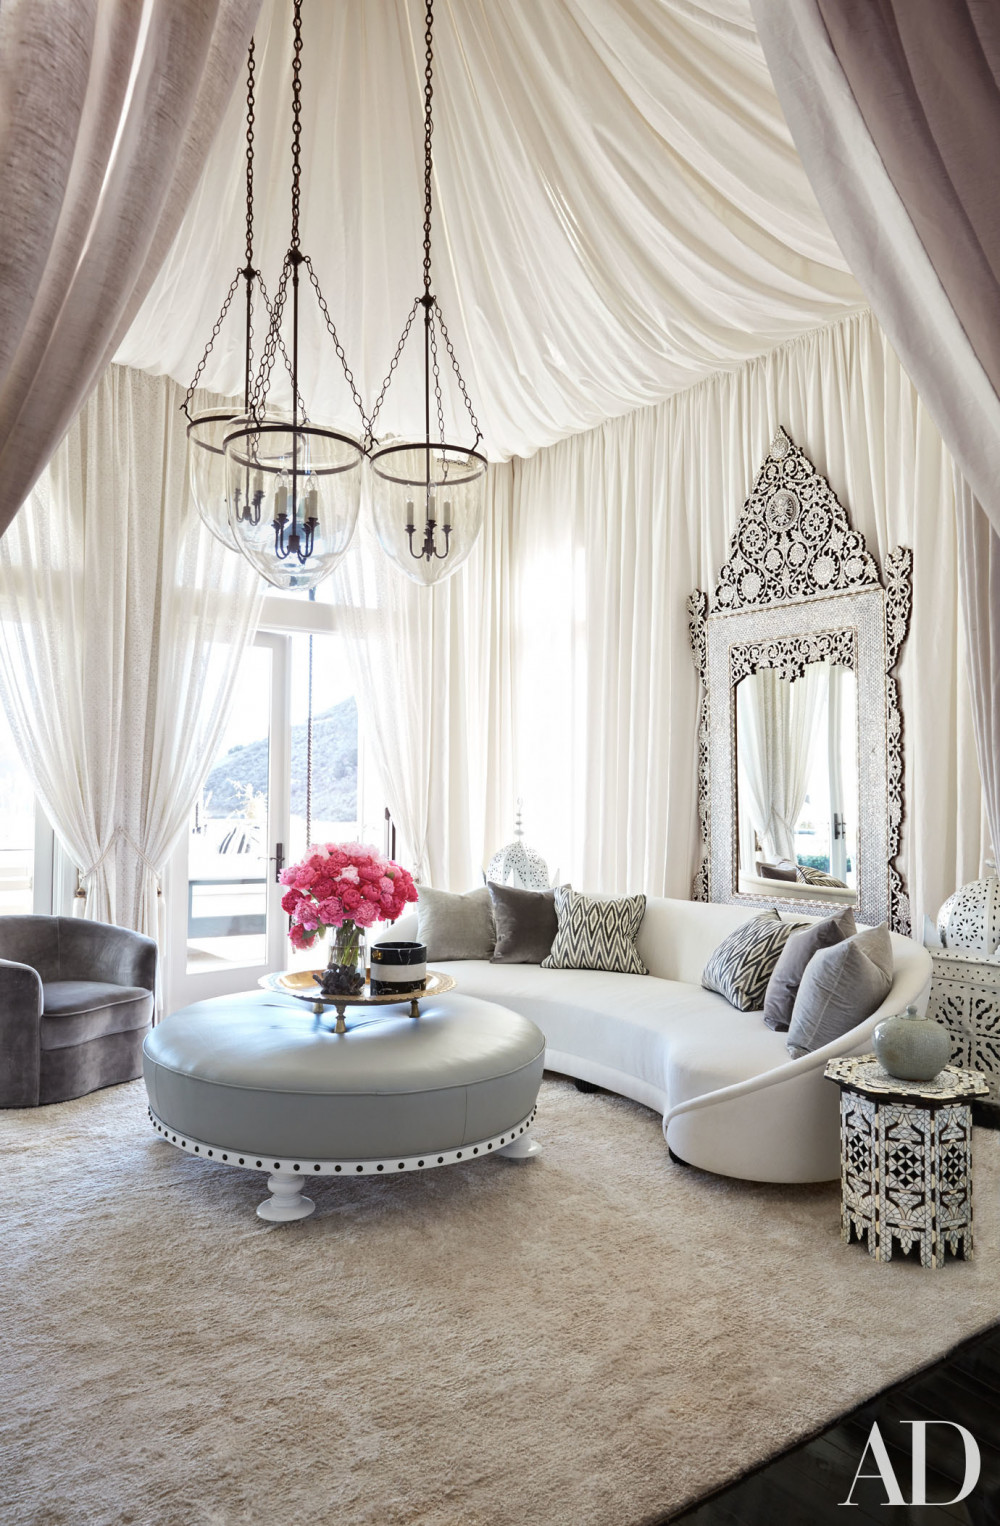 Khloe's Living Room